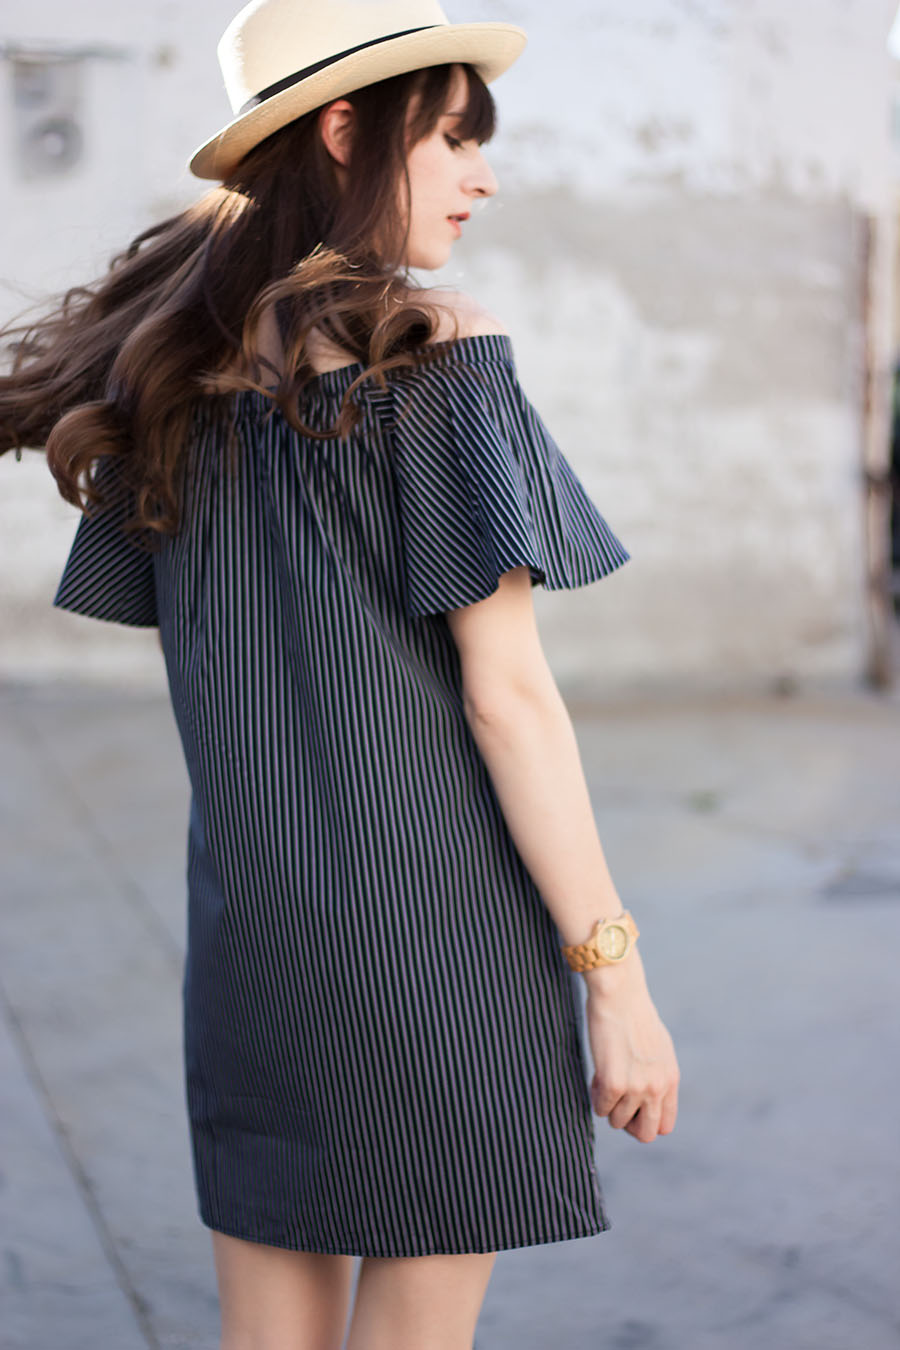 Banana Republic Summer Dress, Striped off the shoulder dress, Pinstriped Dress